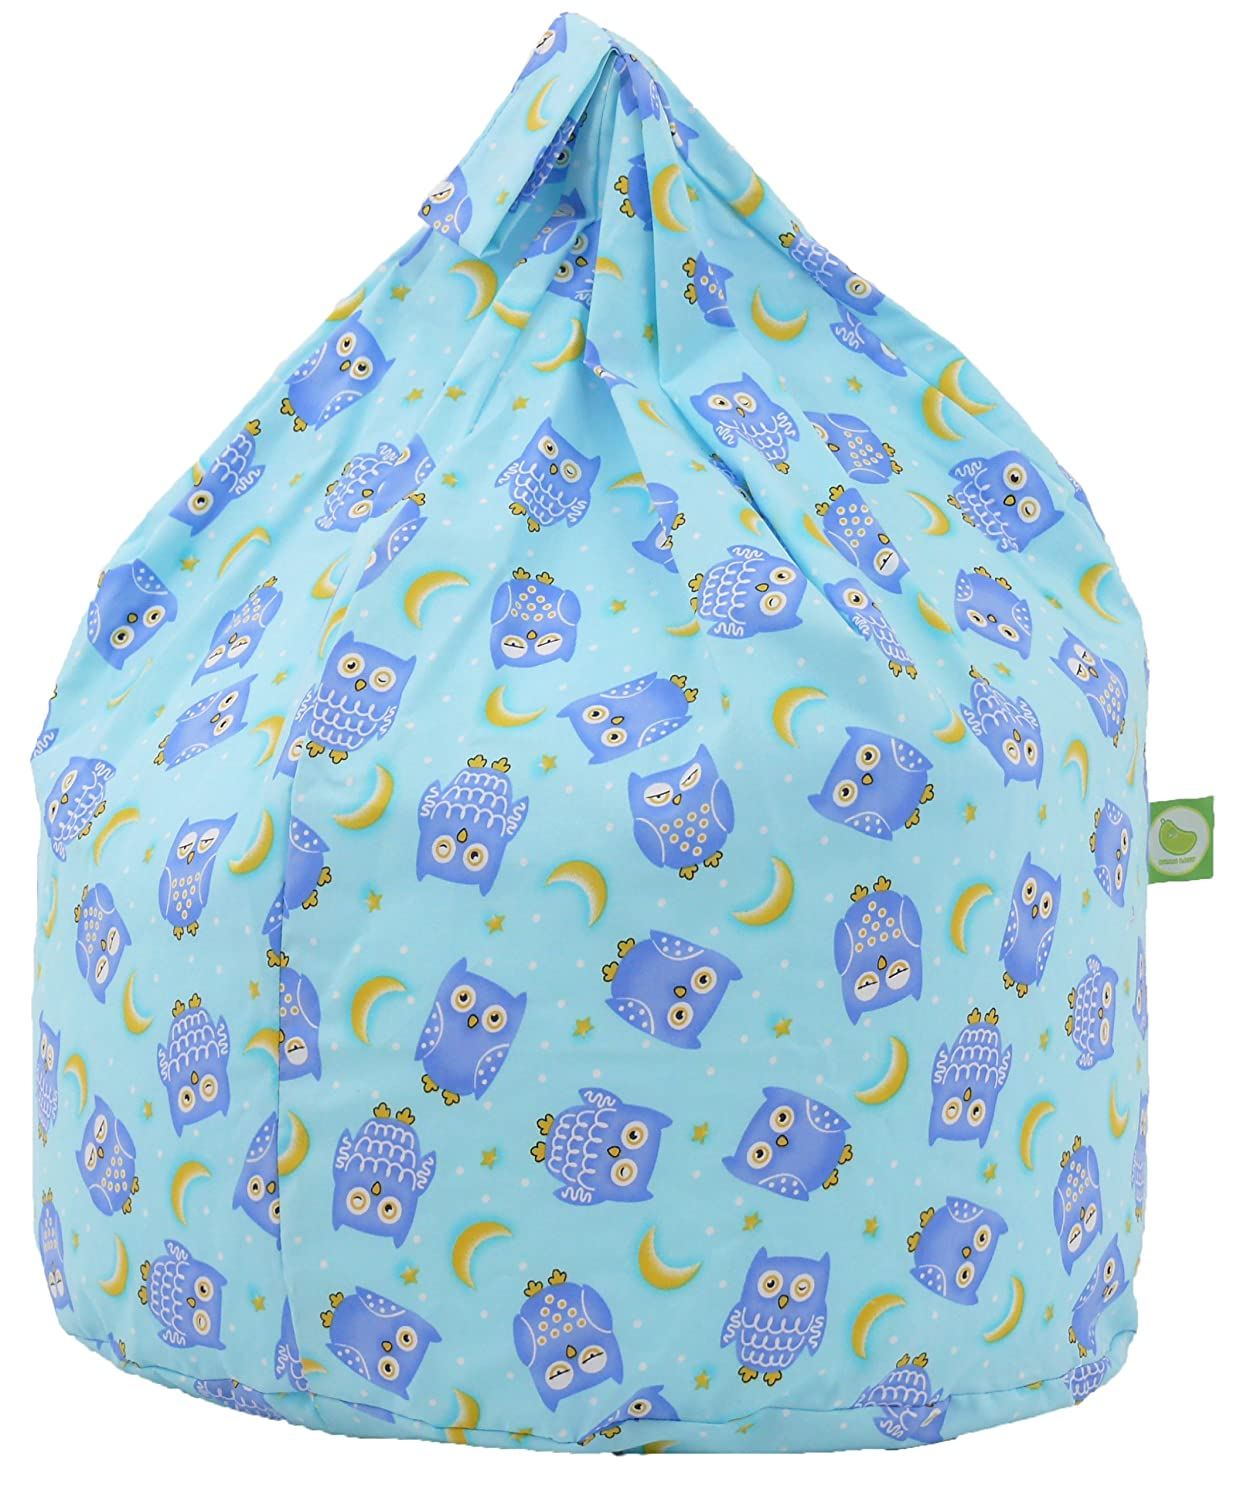 Blue Owl Bean Bag With Beans Large Size By Bean Lazy